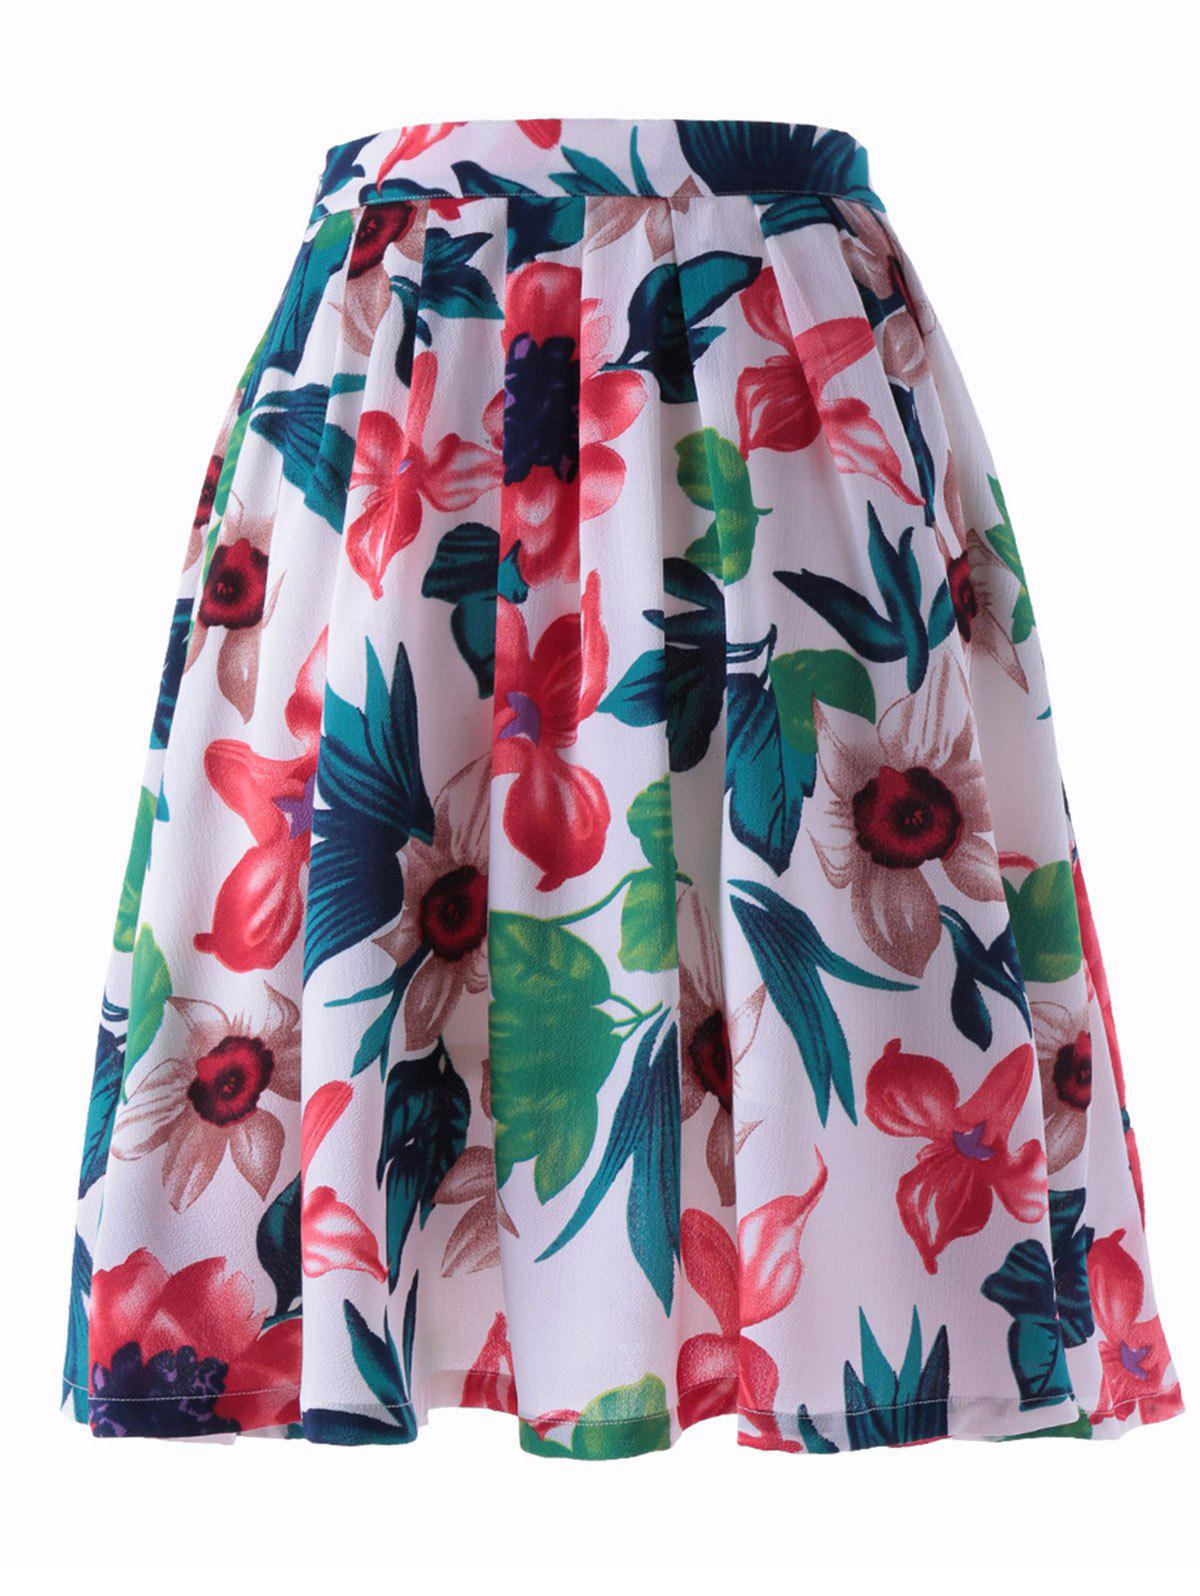 Stylish Printed Pleating Skirts For Women - COLORMIX L